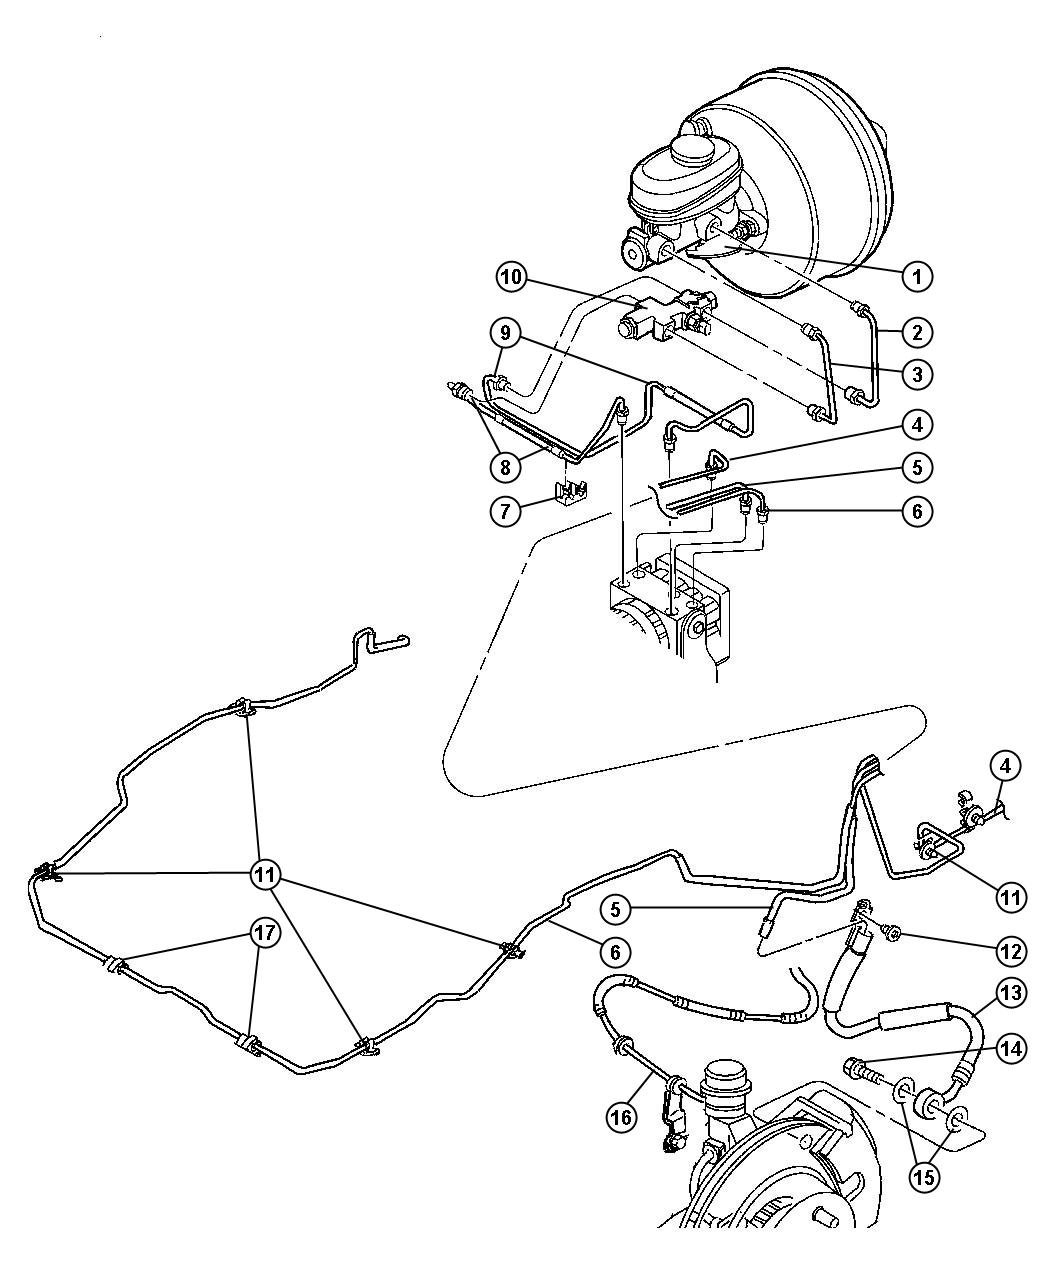 toyota tundra 2005 suspension diagram wiring diagrams Toyota Electrical Wiring Diagram 2001 toyota tundra front suspension diagram 2001 free 2005 toyota tundra suspension diagram toyota tundra front suspension diagram